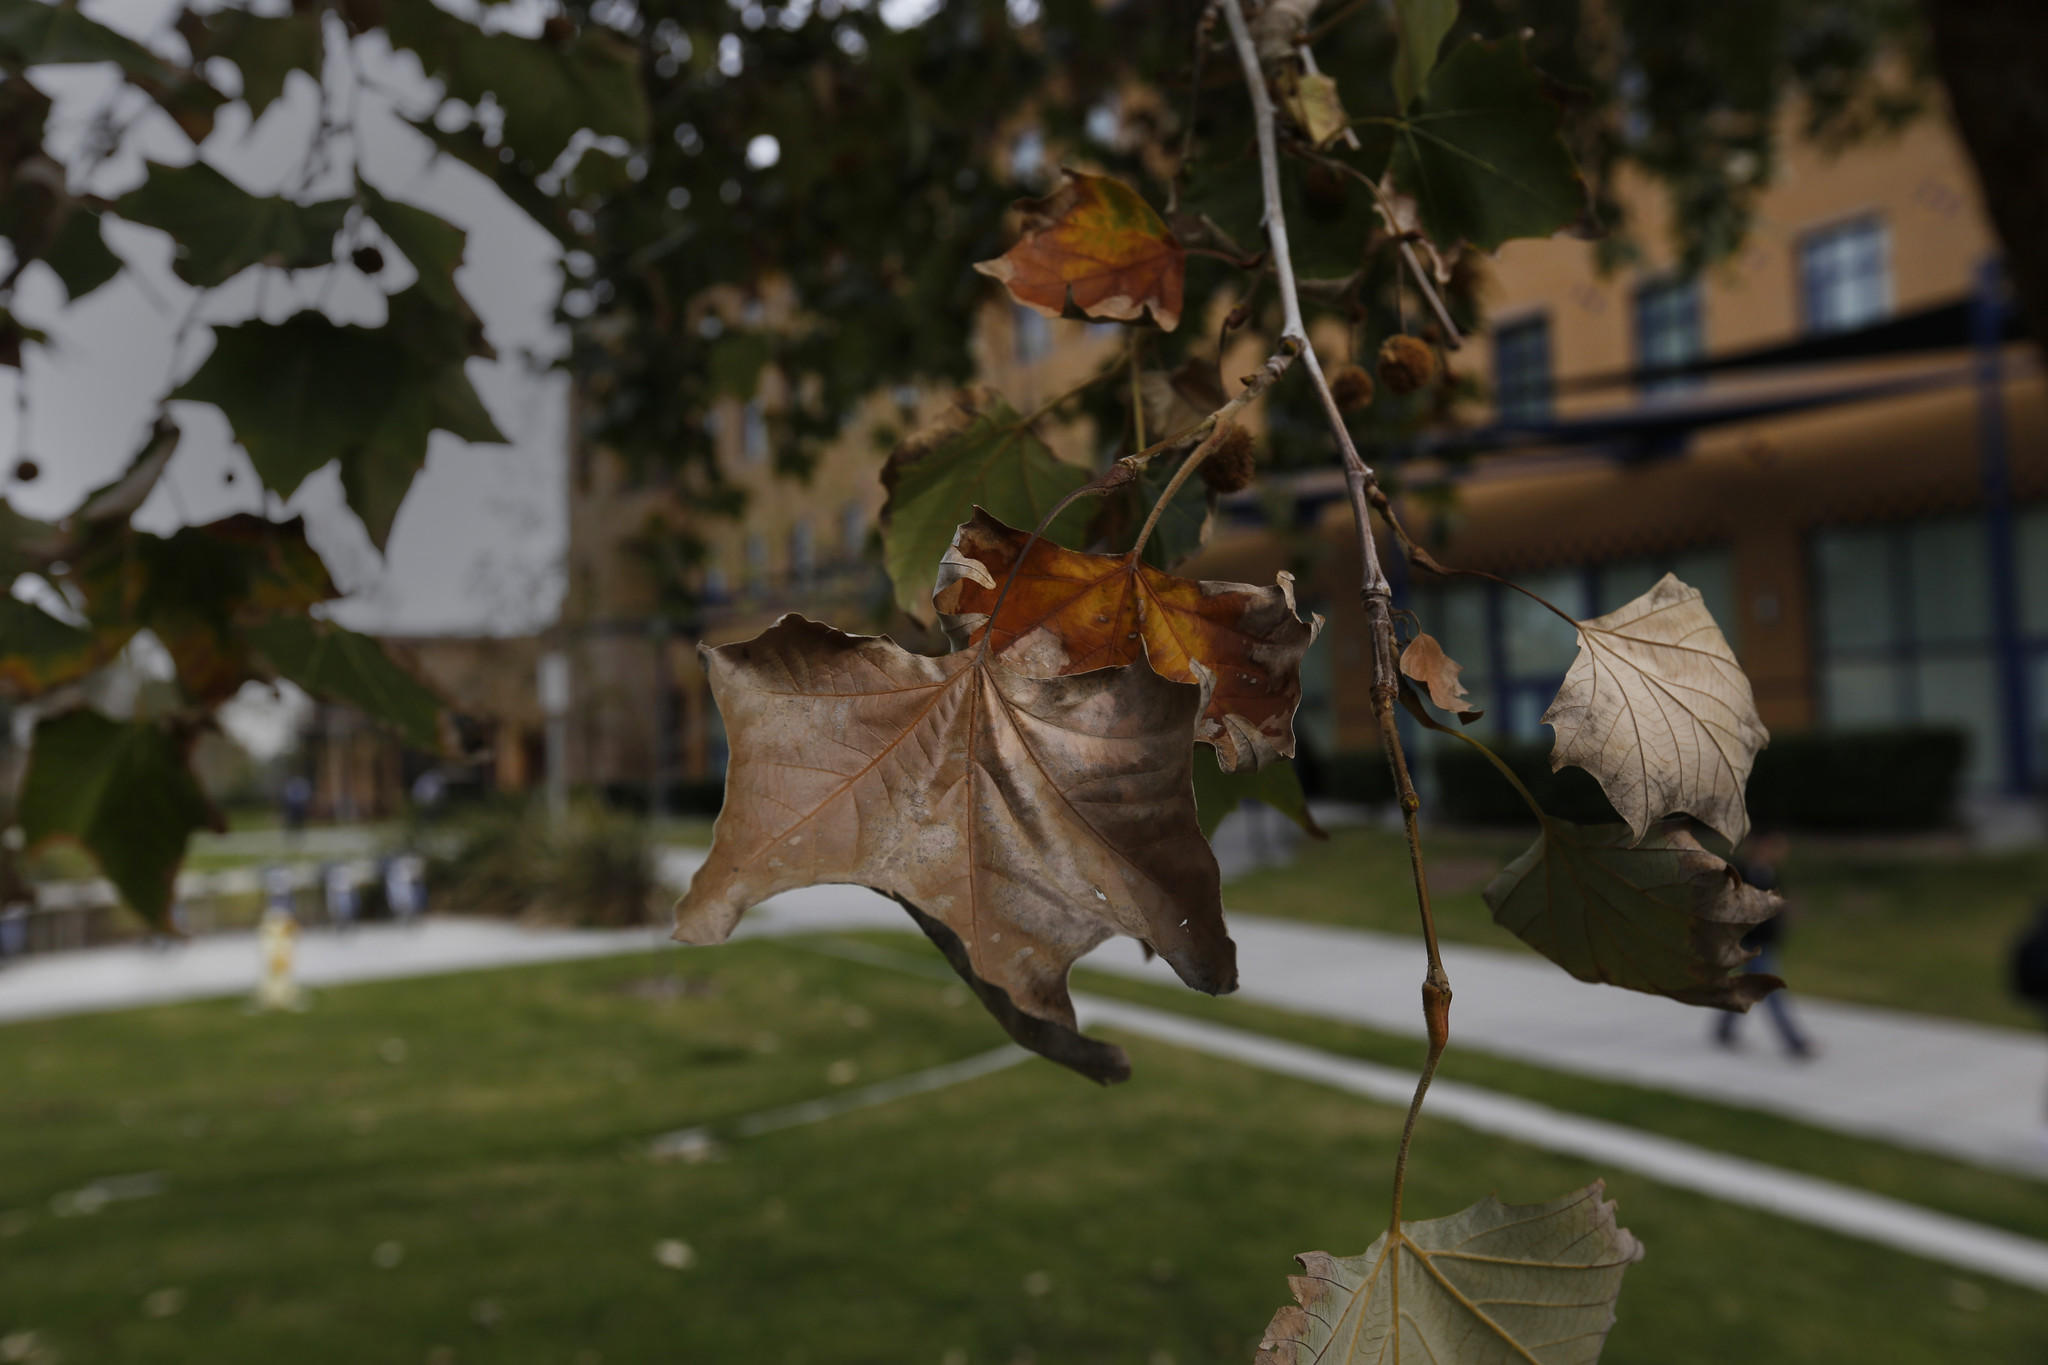 The dying leaves of an infested tree at UCI.